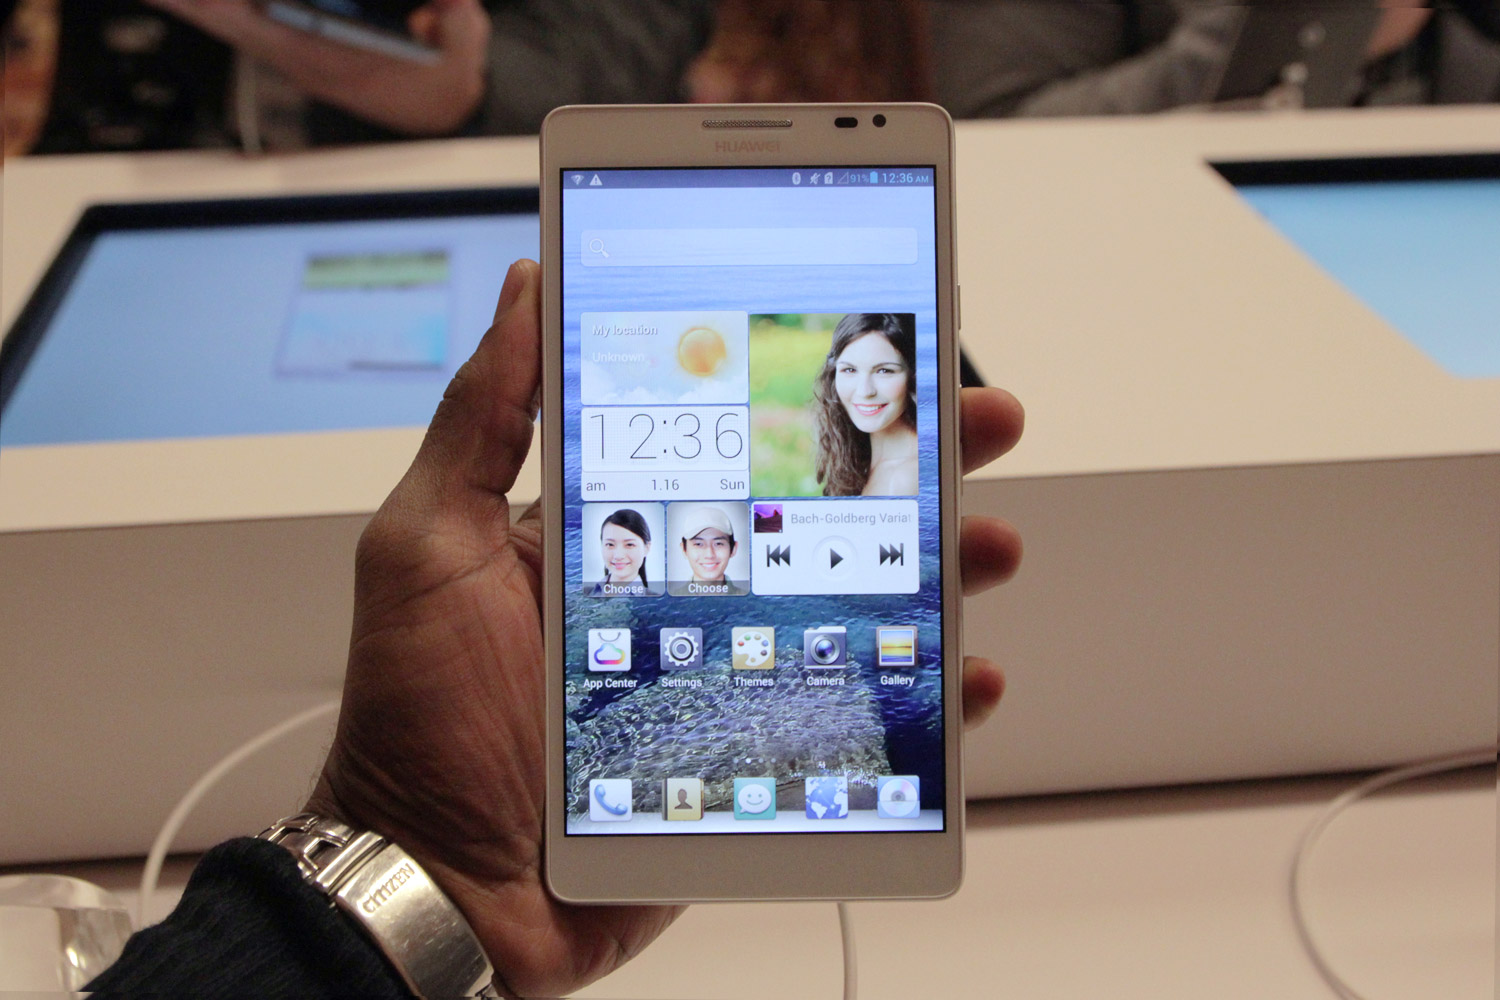 Huawei frappe fort avec son smartphone